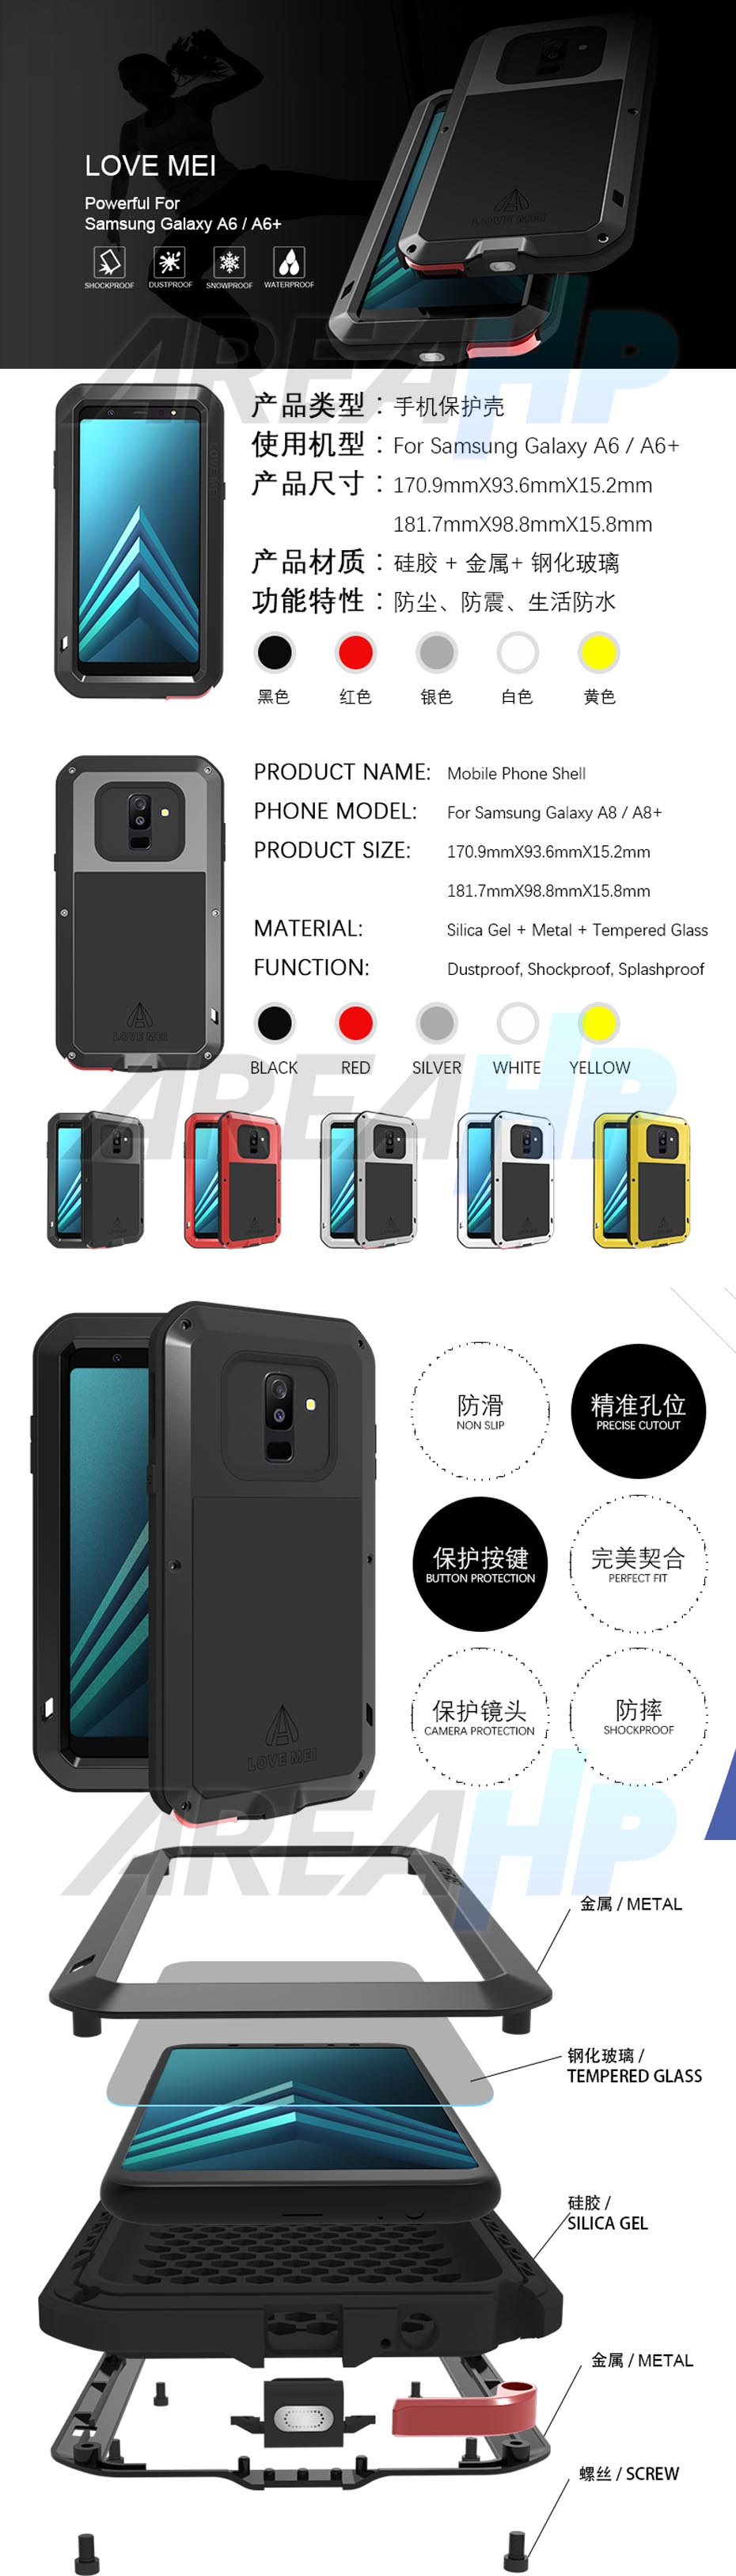 Love Mei Powerful Case for Samsung A6 2018 Overview